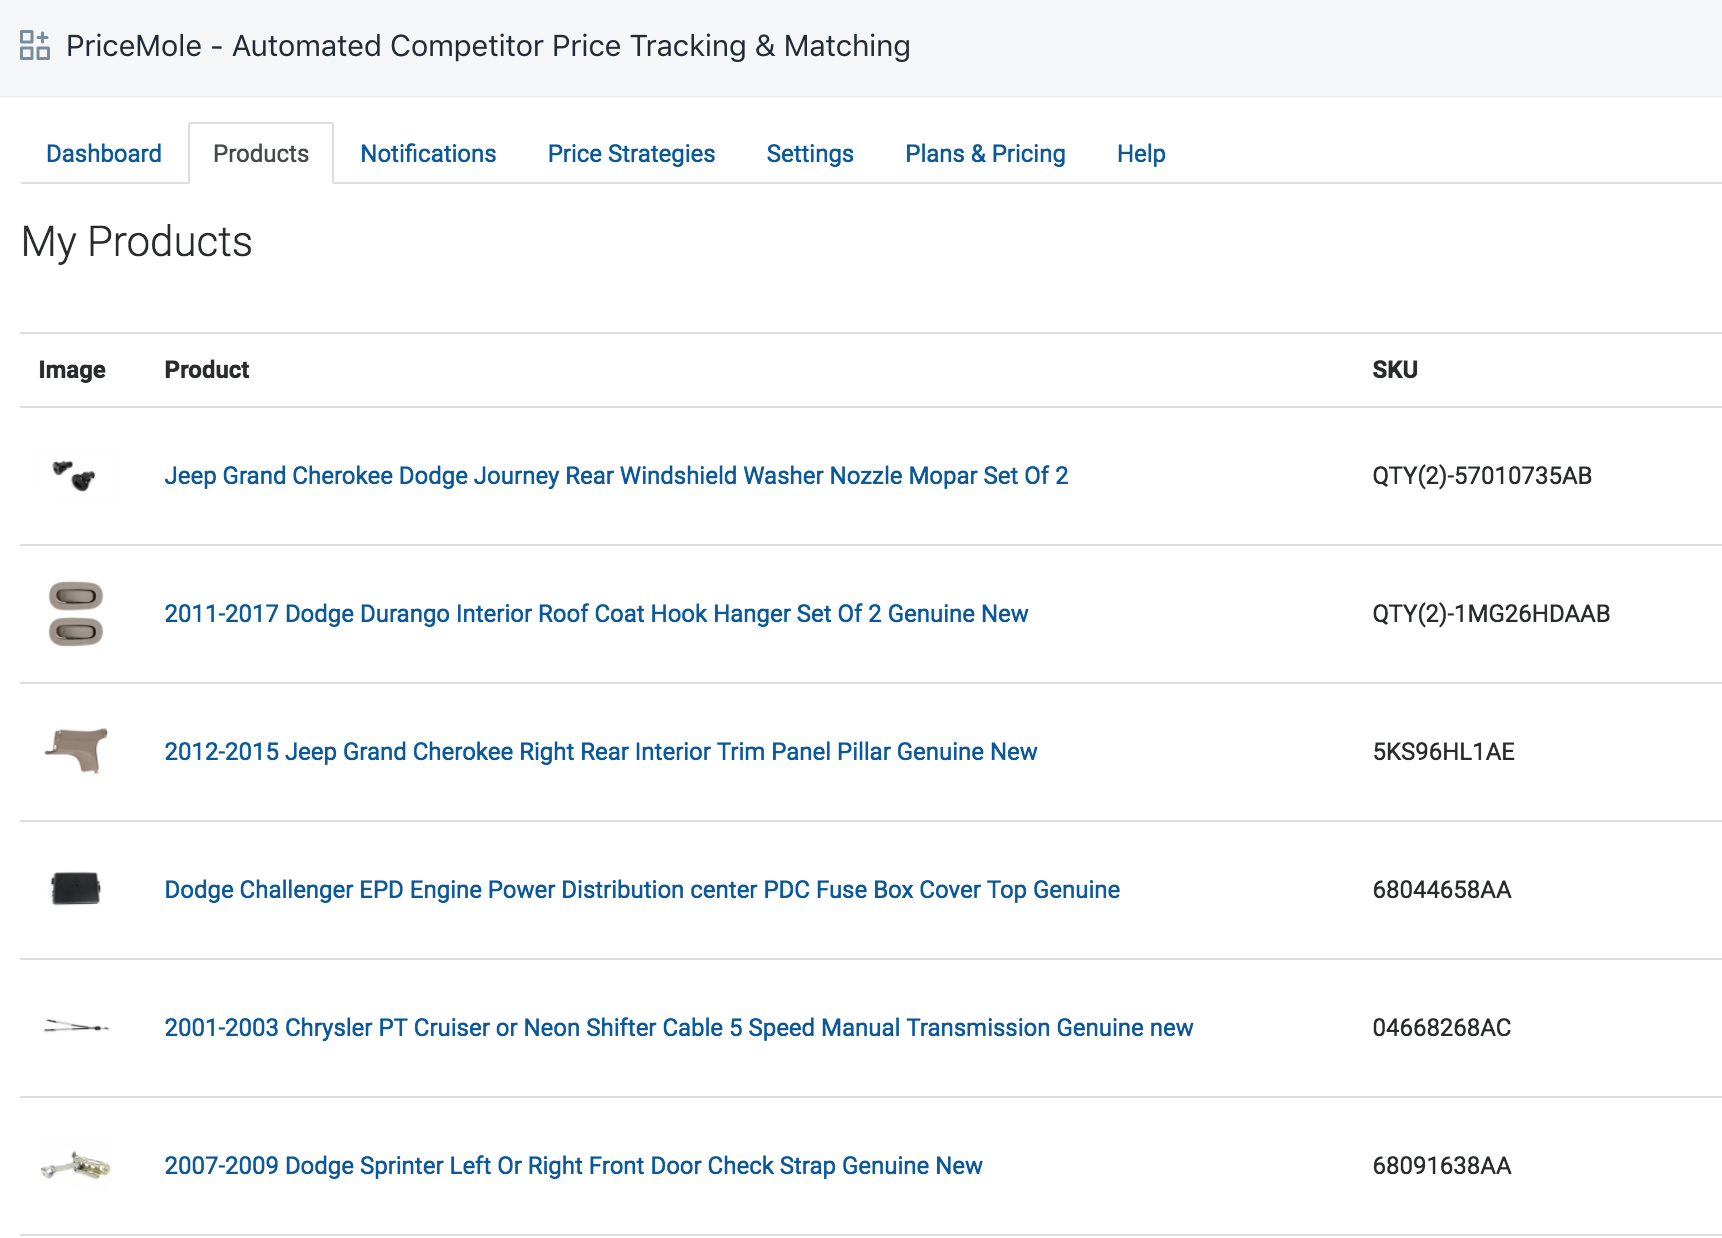 Developer Update March 2018 Competitor Price Monitoring Tracking 2003 Neon Fuse Box Product Skus And Search